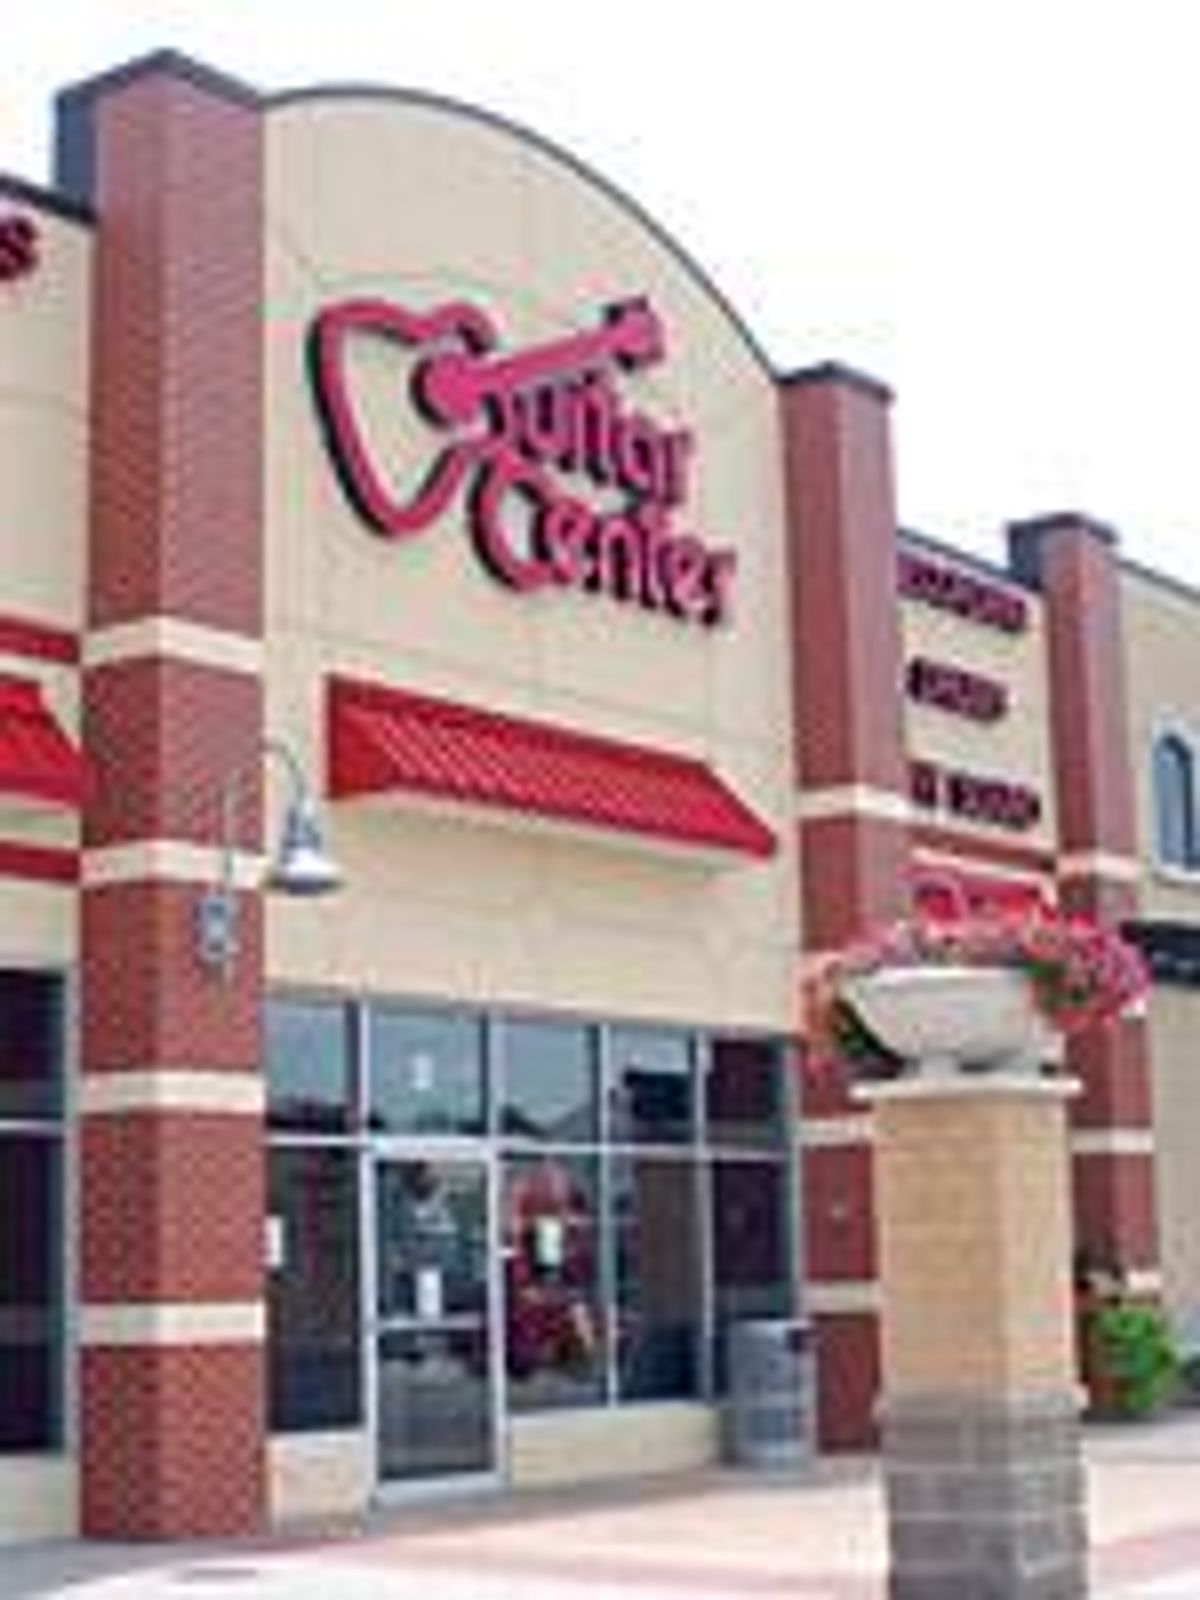 Guitar Center Agrees to Buyout